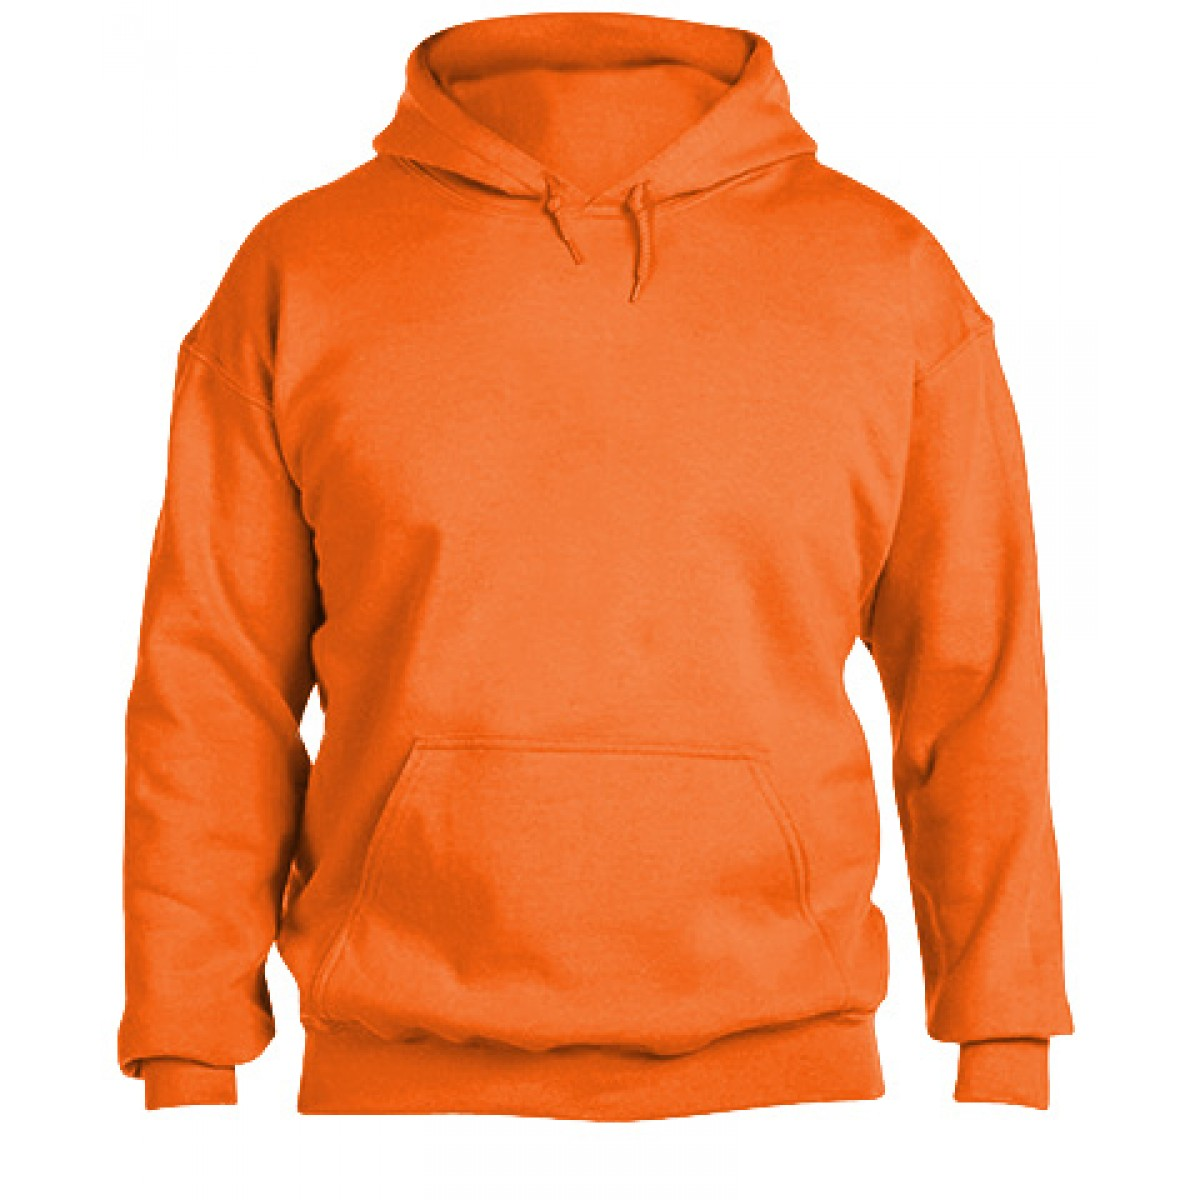 Hooded Sweatshirt 50/50 Heavy Blend Safety Orange